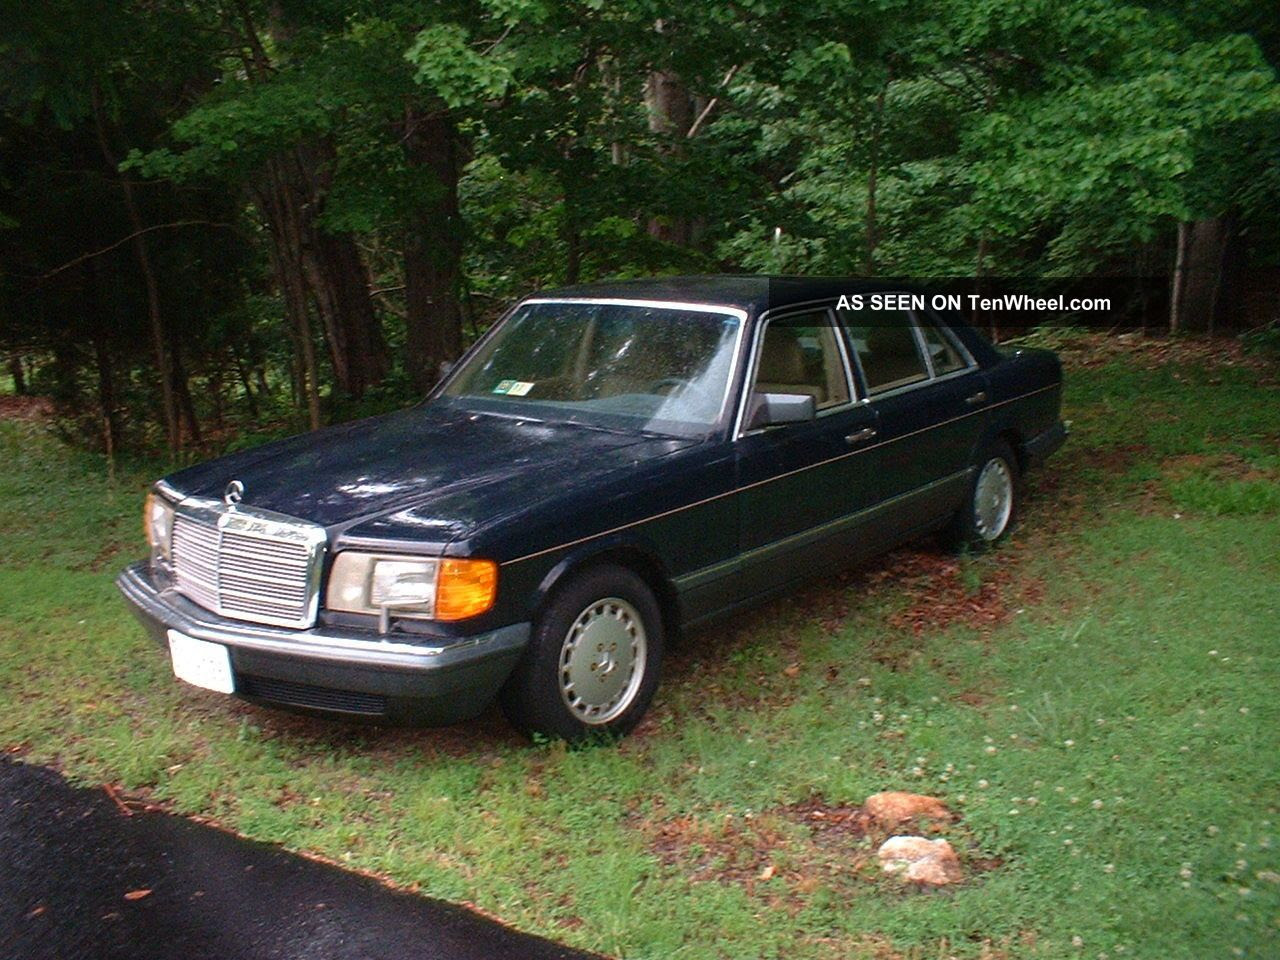 1988 Mercedes Benz 420 Sel - Mercedes Mechanic Replaced Engine